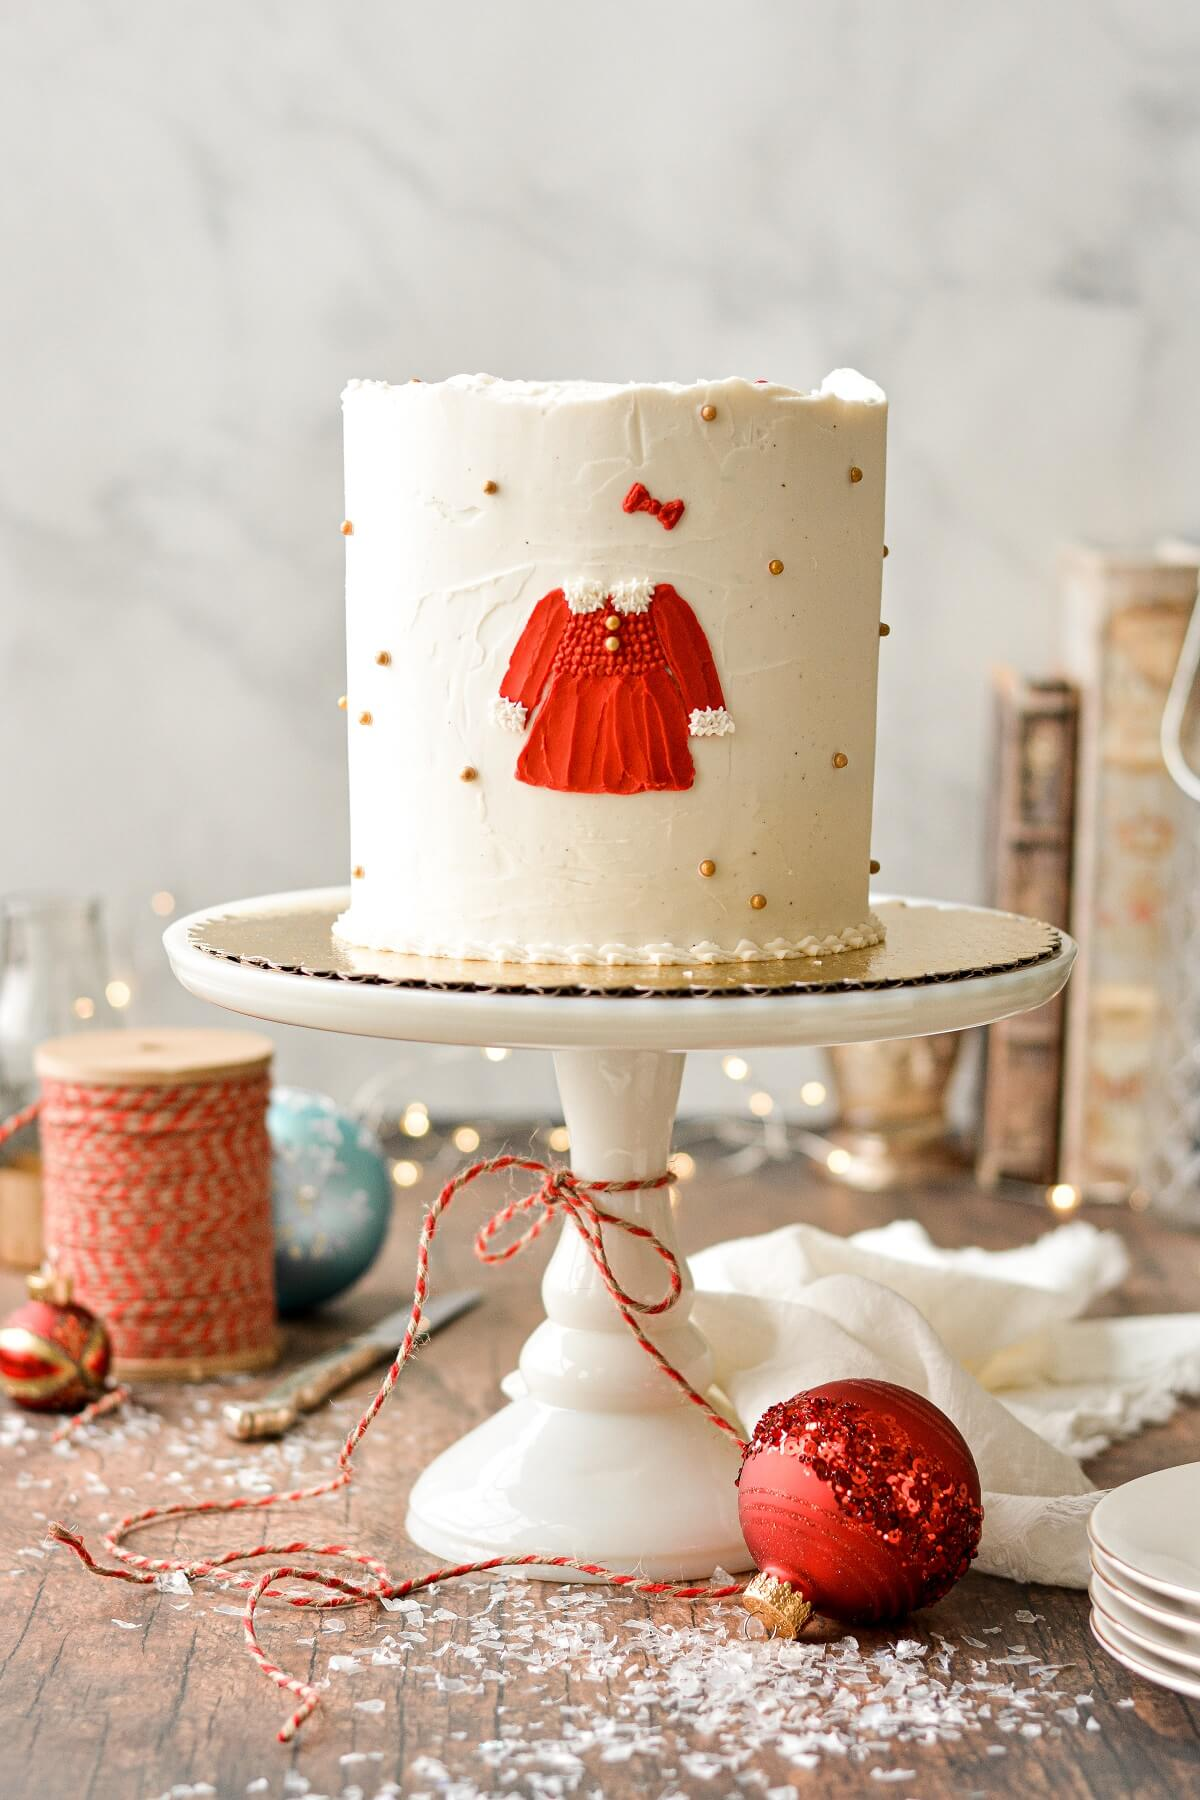 A Christmas cake with gold and red sugar pearls, ornaments, and a red Christmas dress painted on the cake in buttercream.